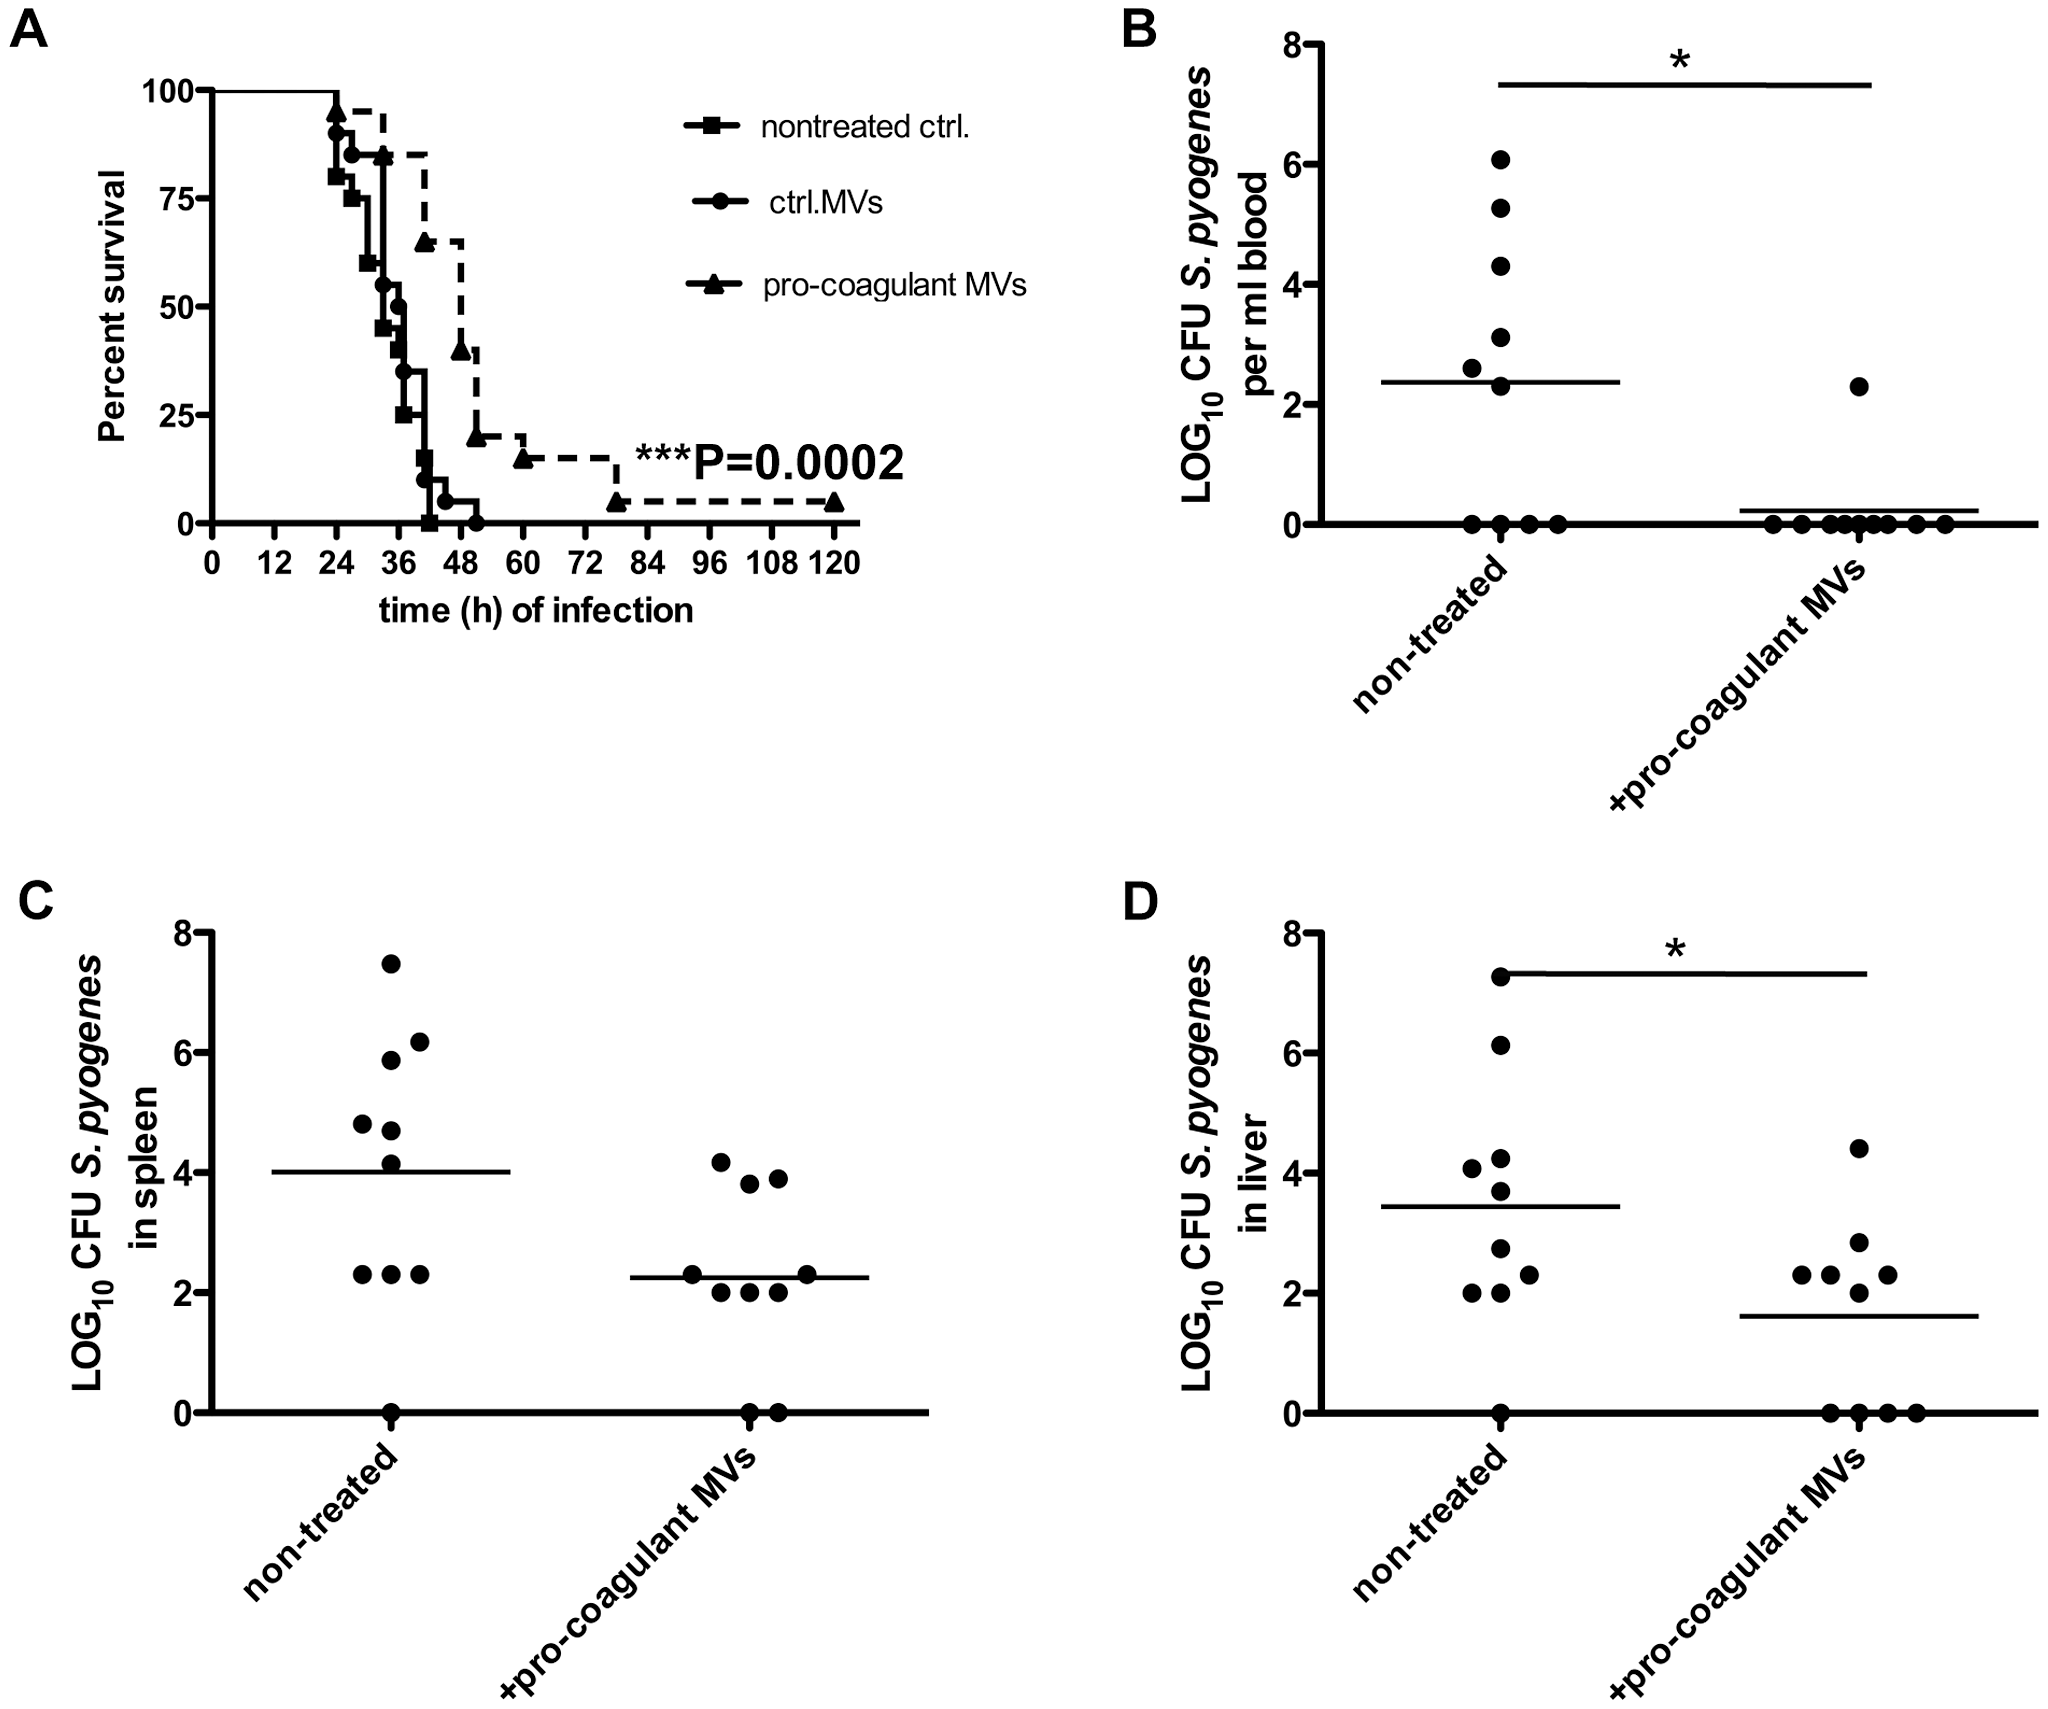 Treatment with pro-coagulant MVs in a mouse model of <i>S.</i> <i>pyogenes</i> sepsis dampens bacterial dissemination and improves survival.